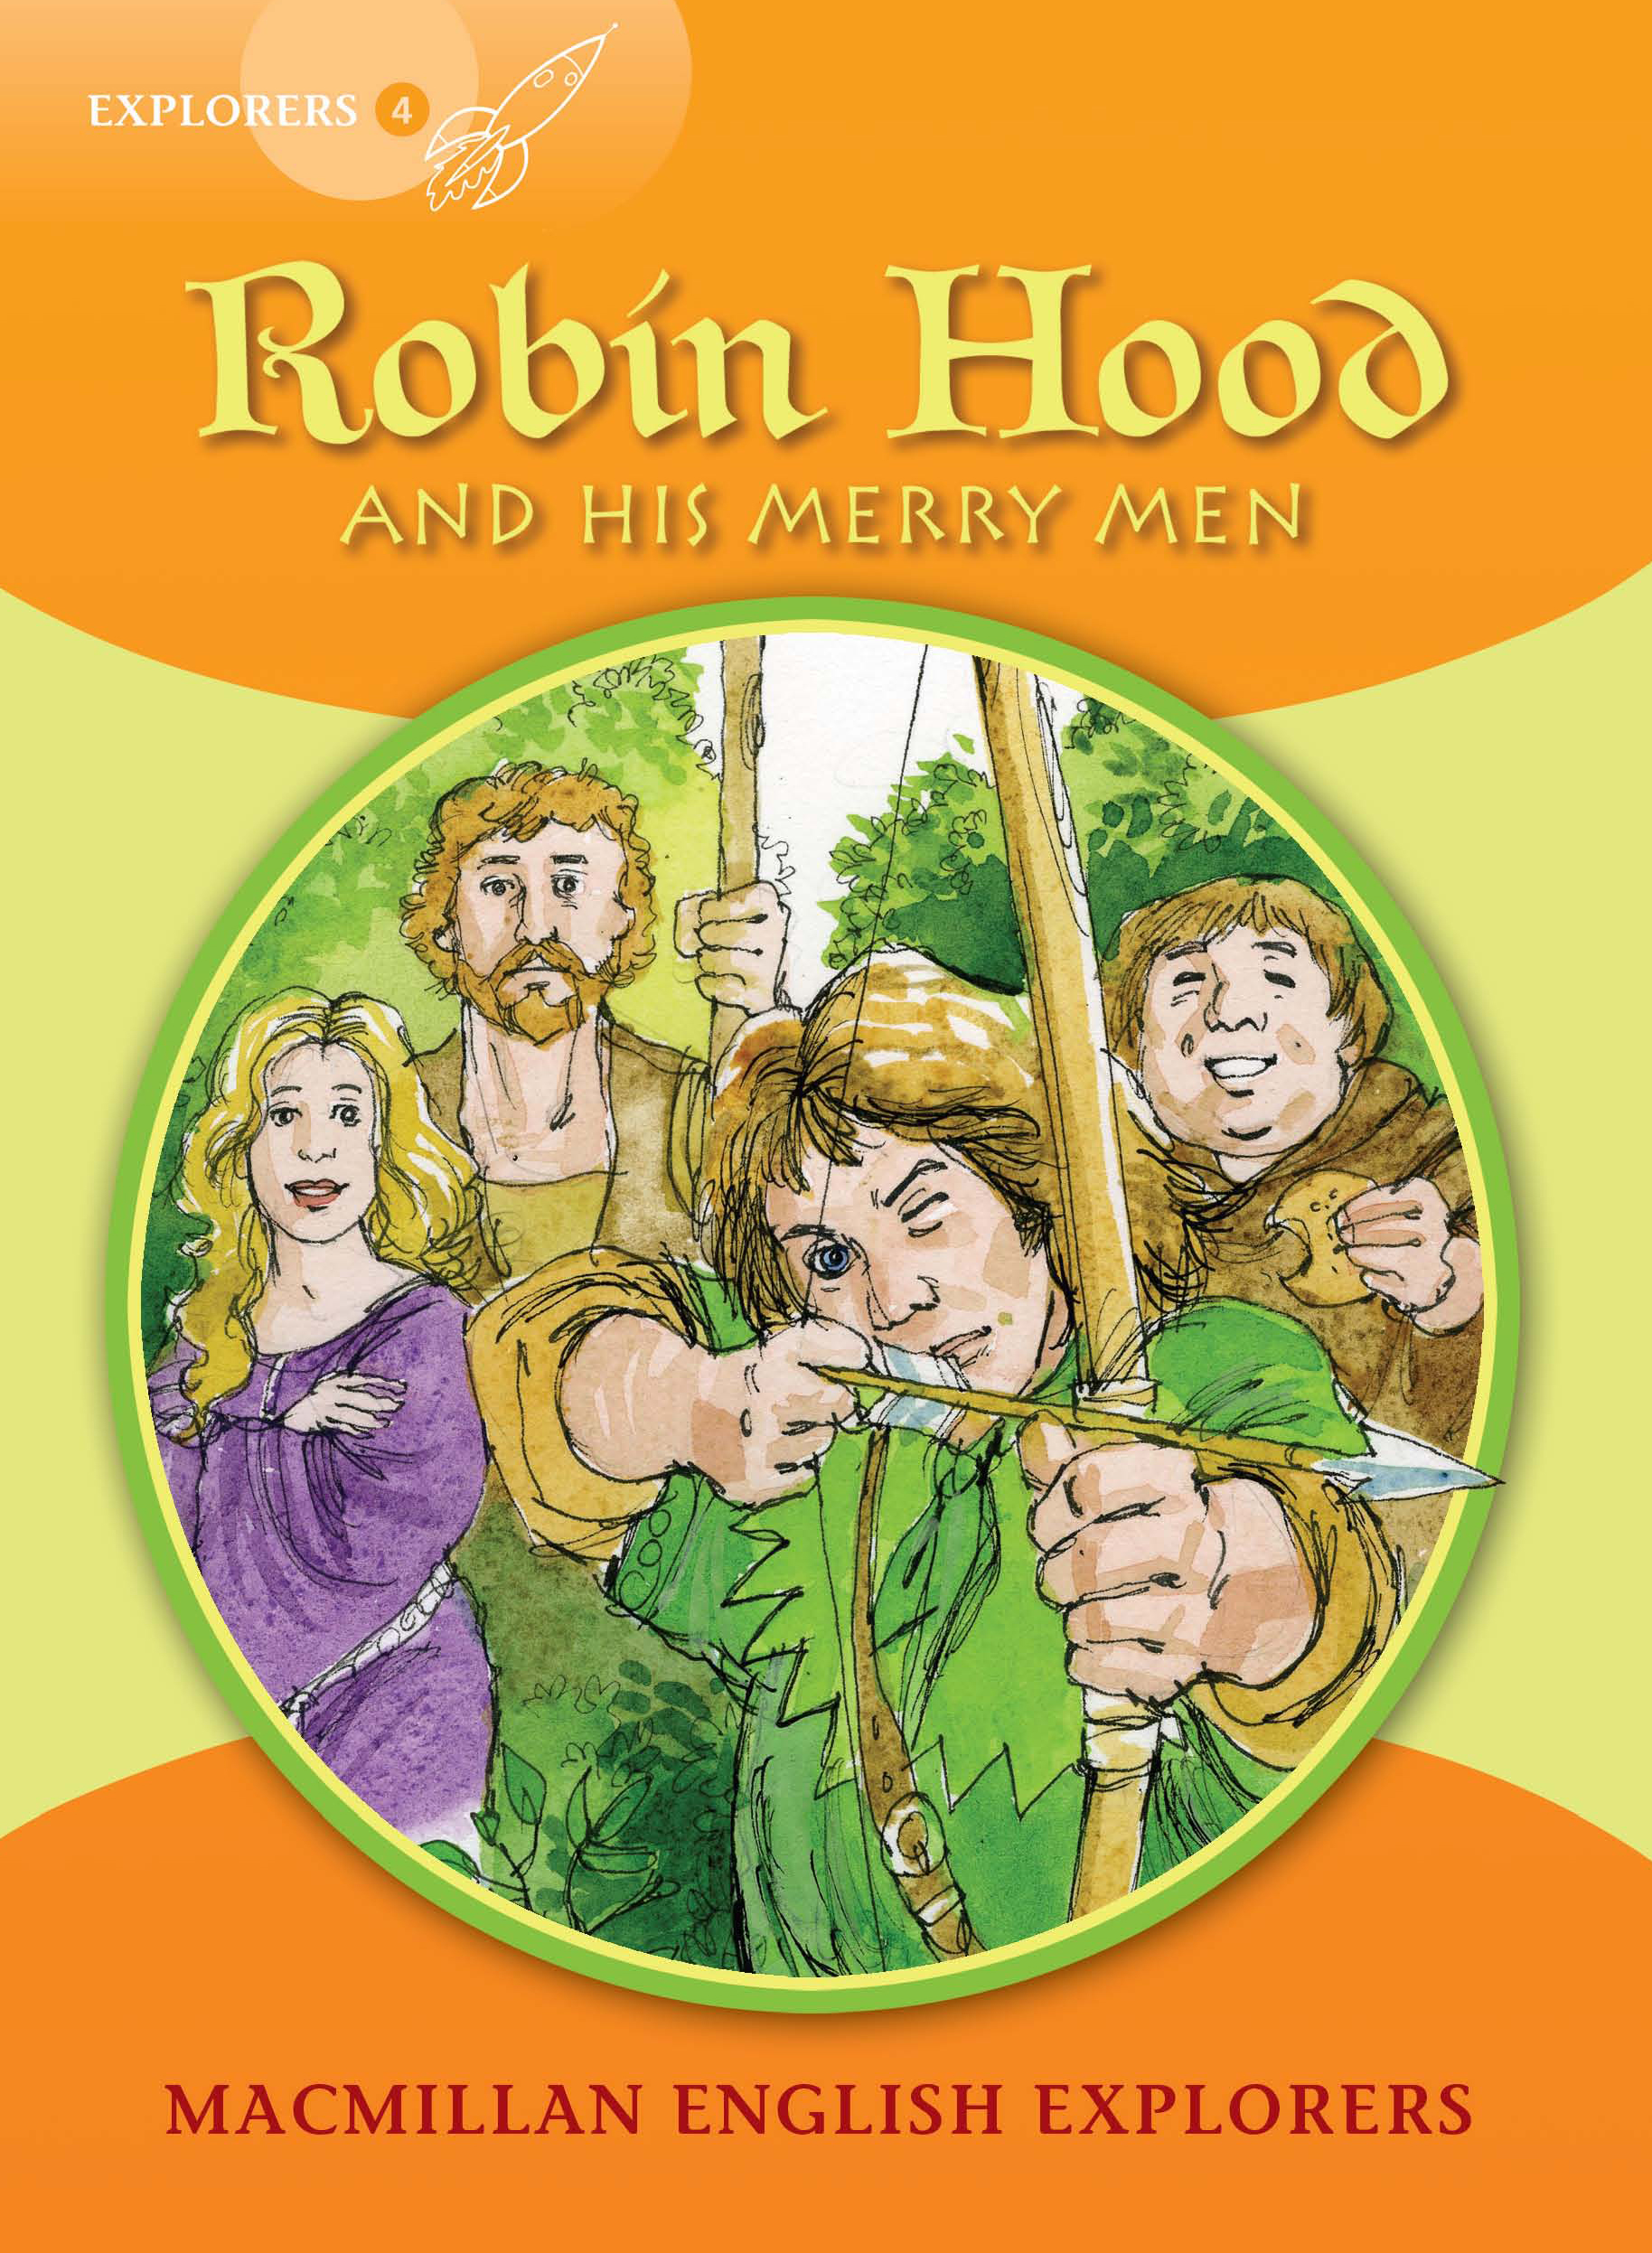 Explorers 4: Robin Hood and his Merry Men